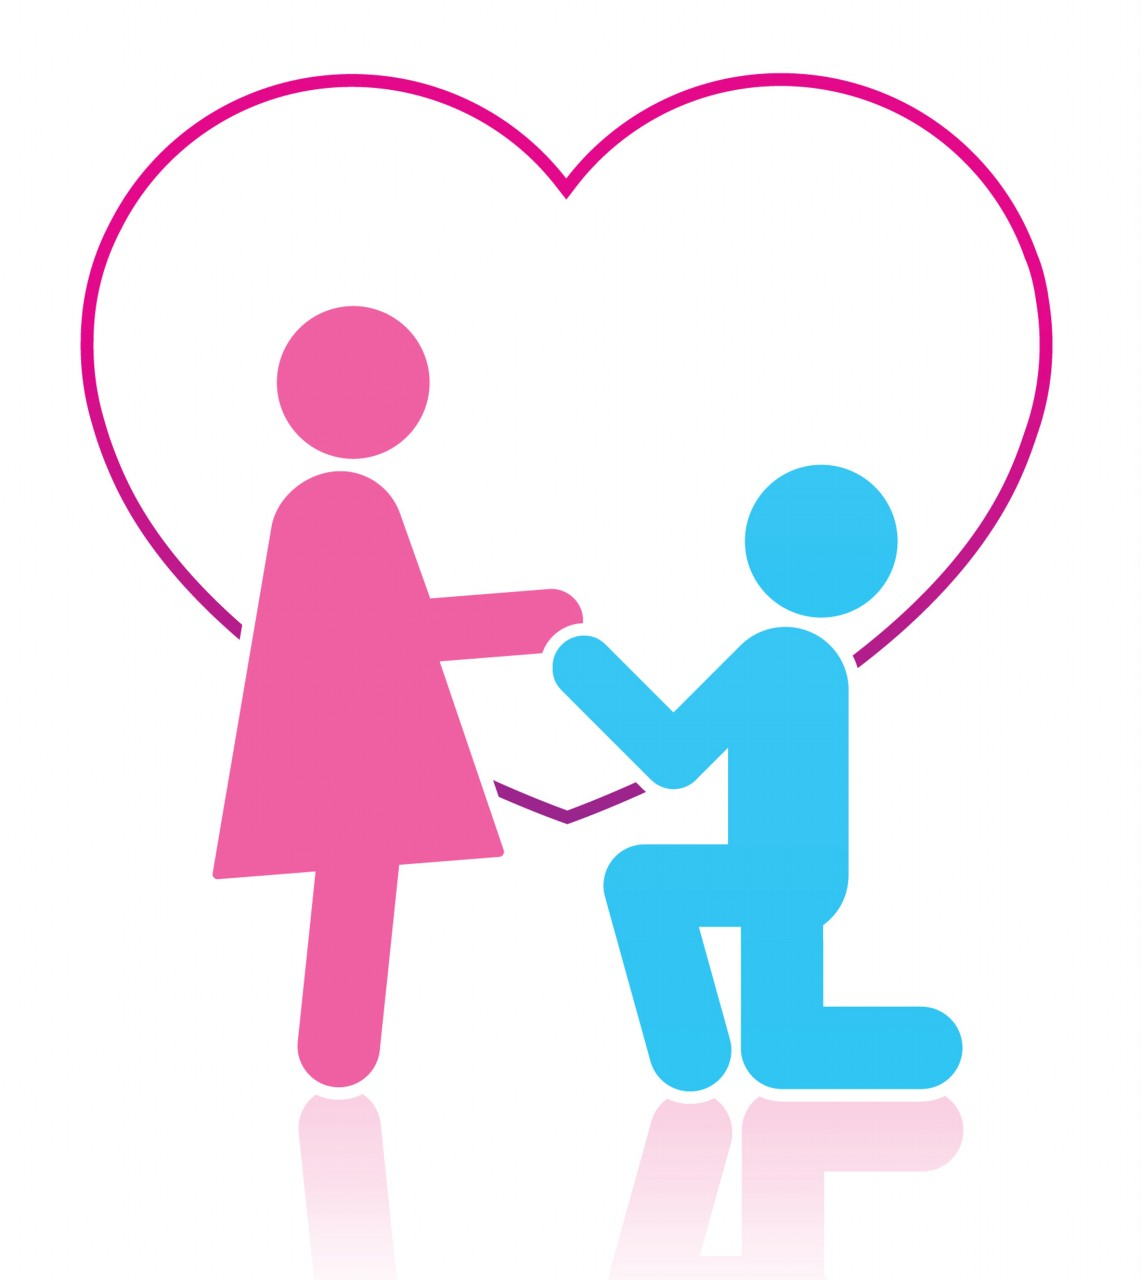 In love clipart clipart picture freeuse download Love Clipart | Clipart Panda - Free Clipart Images picture freeuse download